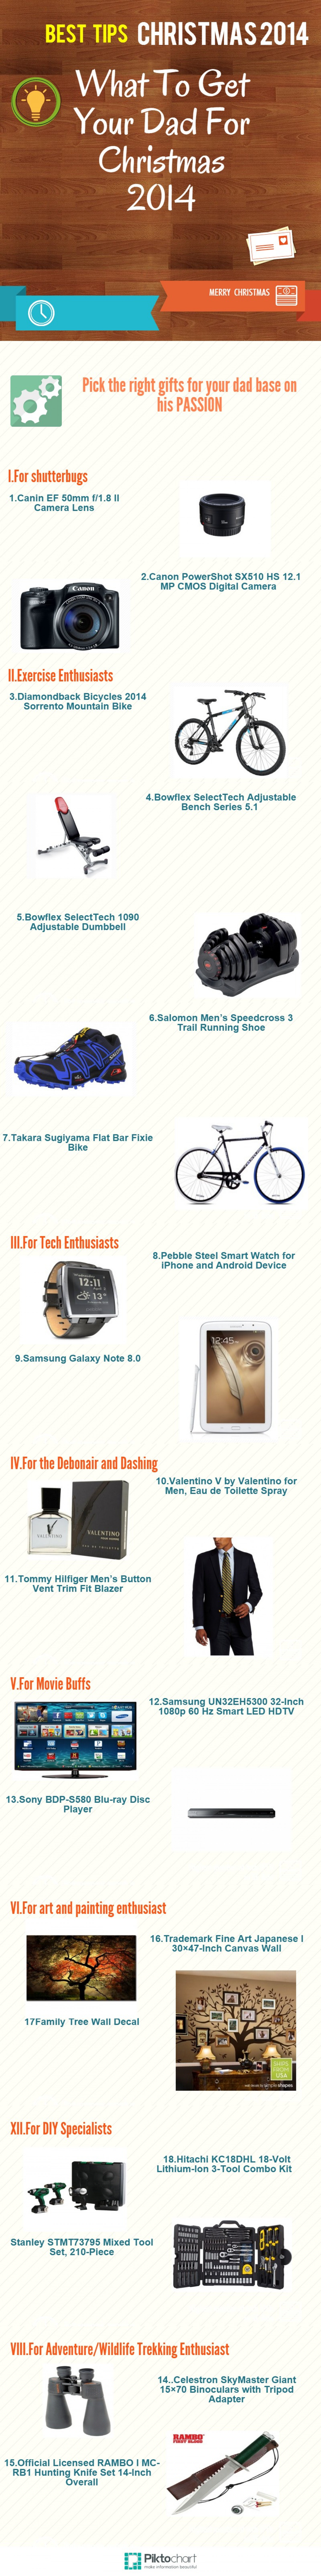 what to get your dad for christmas 2014 infographic